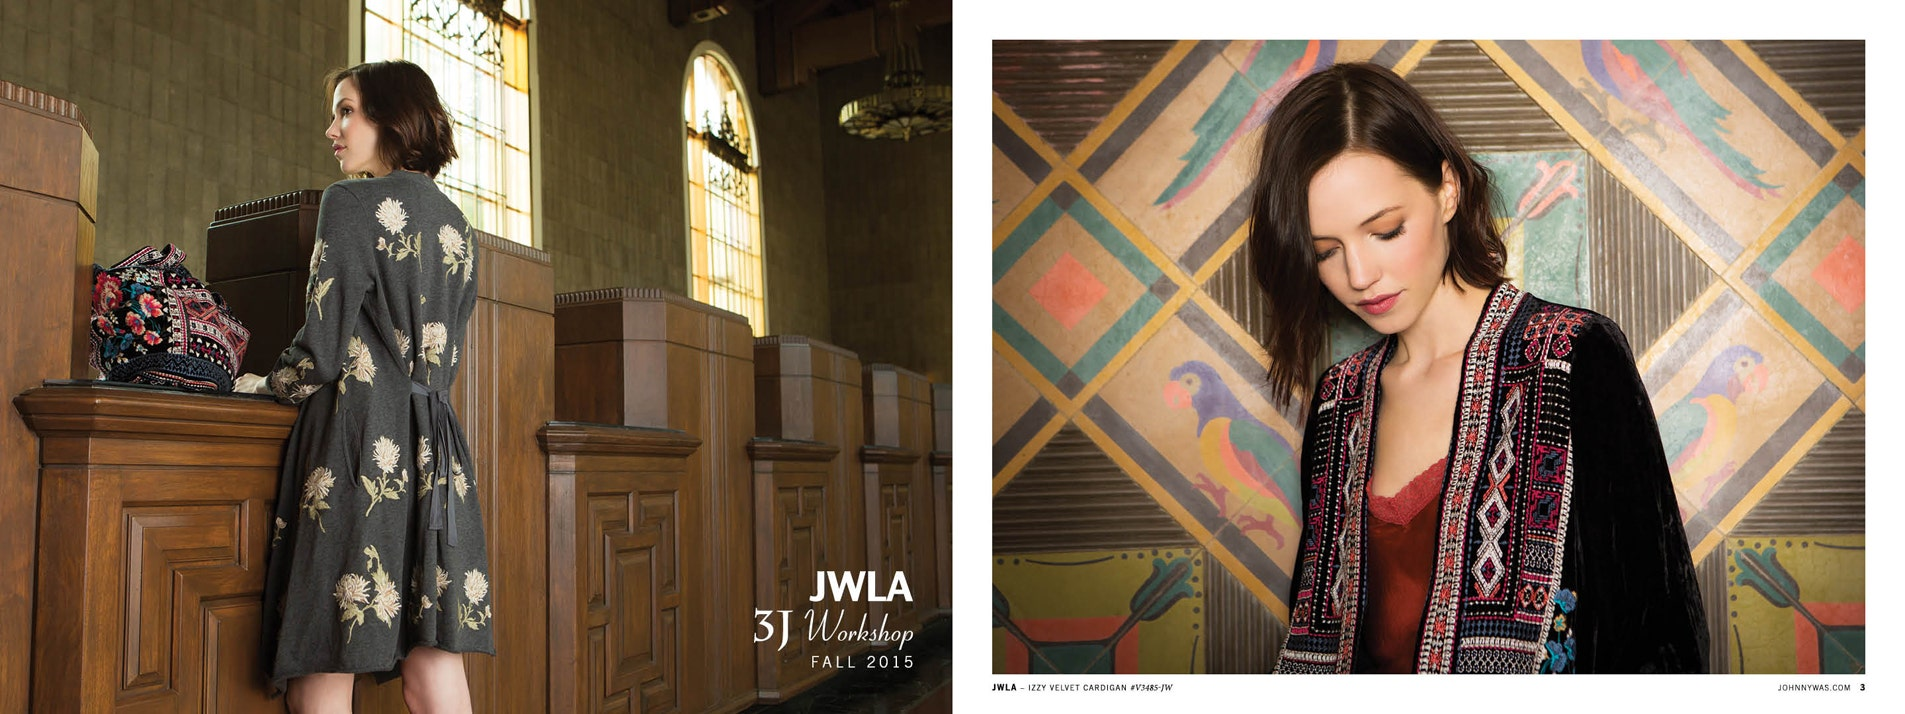 JWLA 3J Workshop Fall 2015 Lookbook